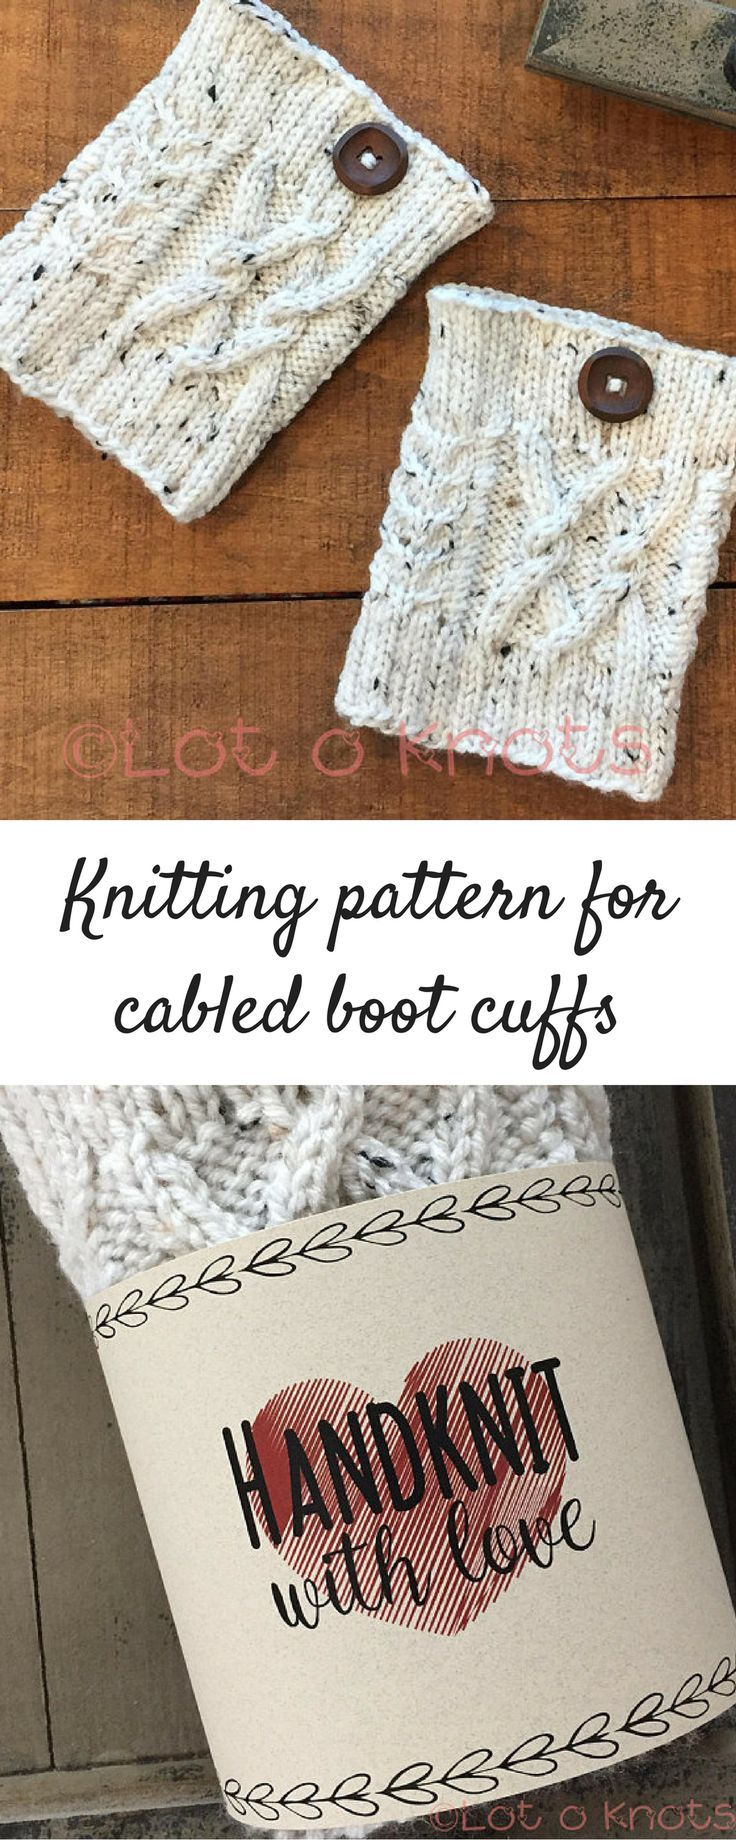 Knitting pattern for cabled boot cuffs. Comes with a printable wrap ...